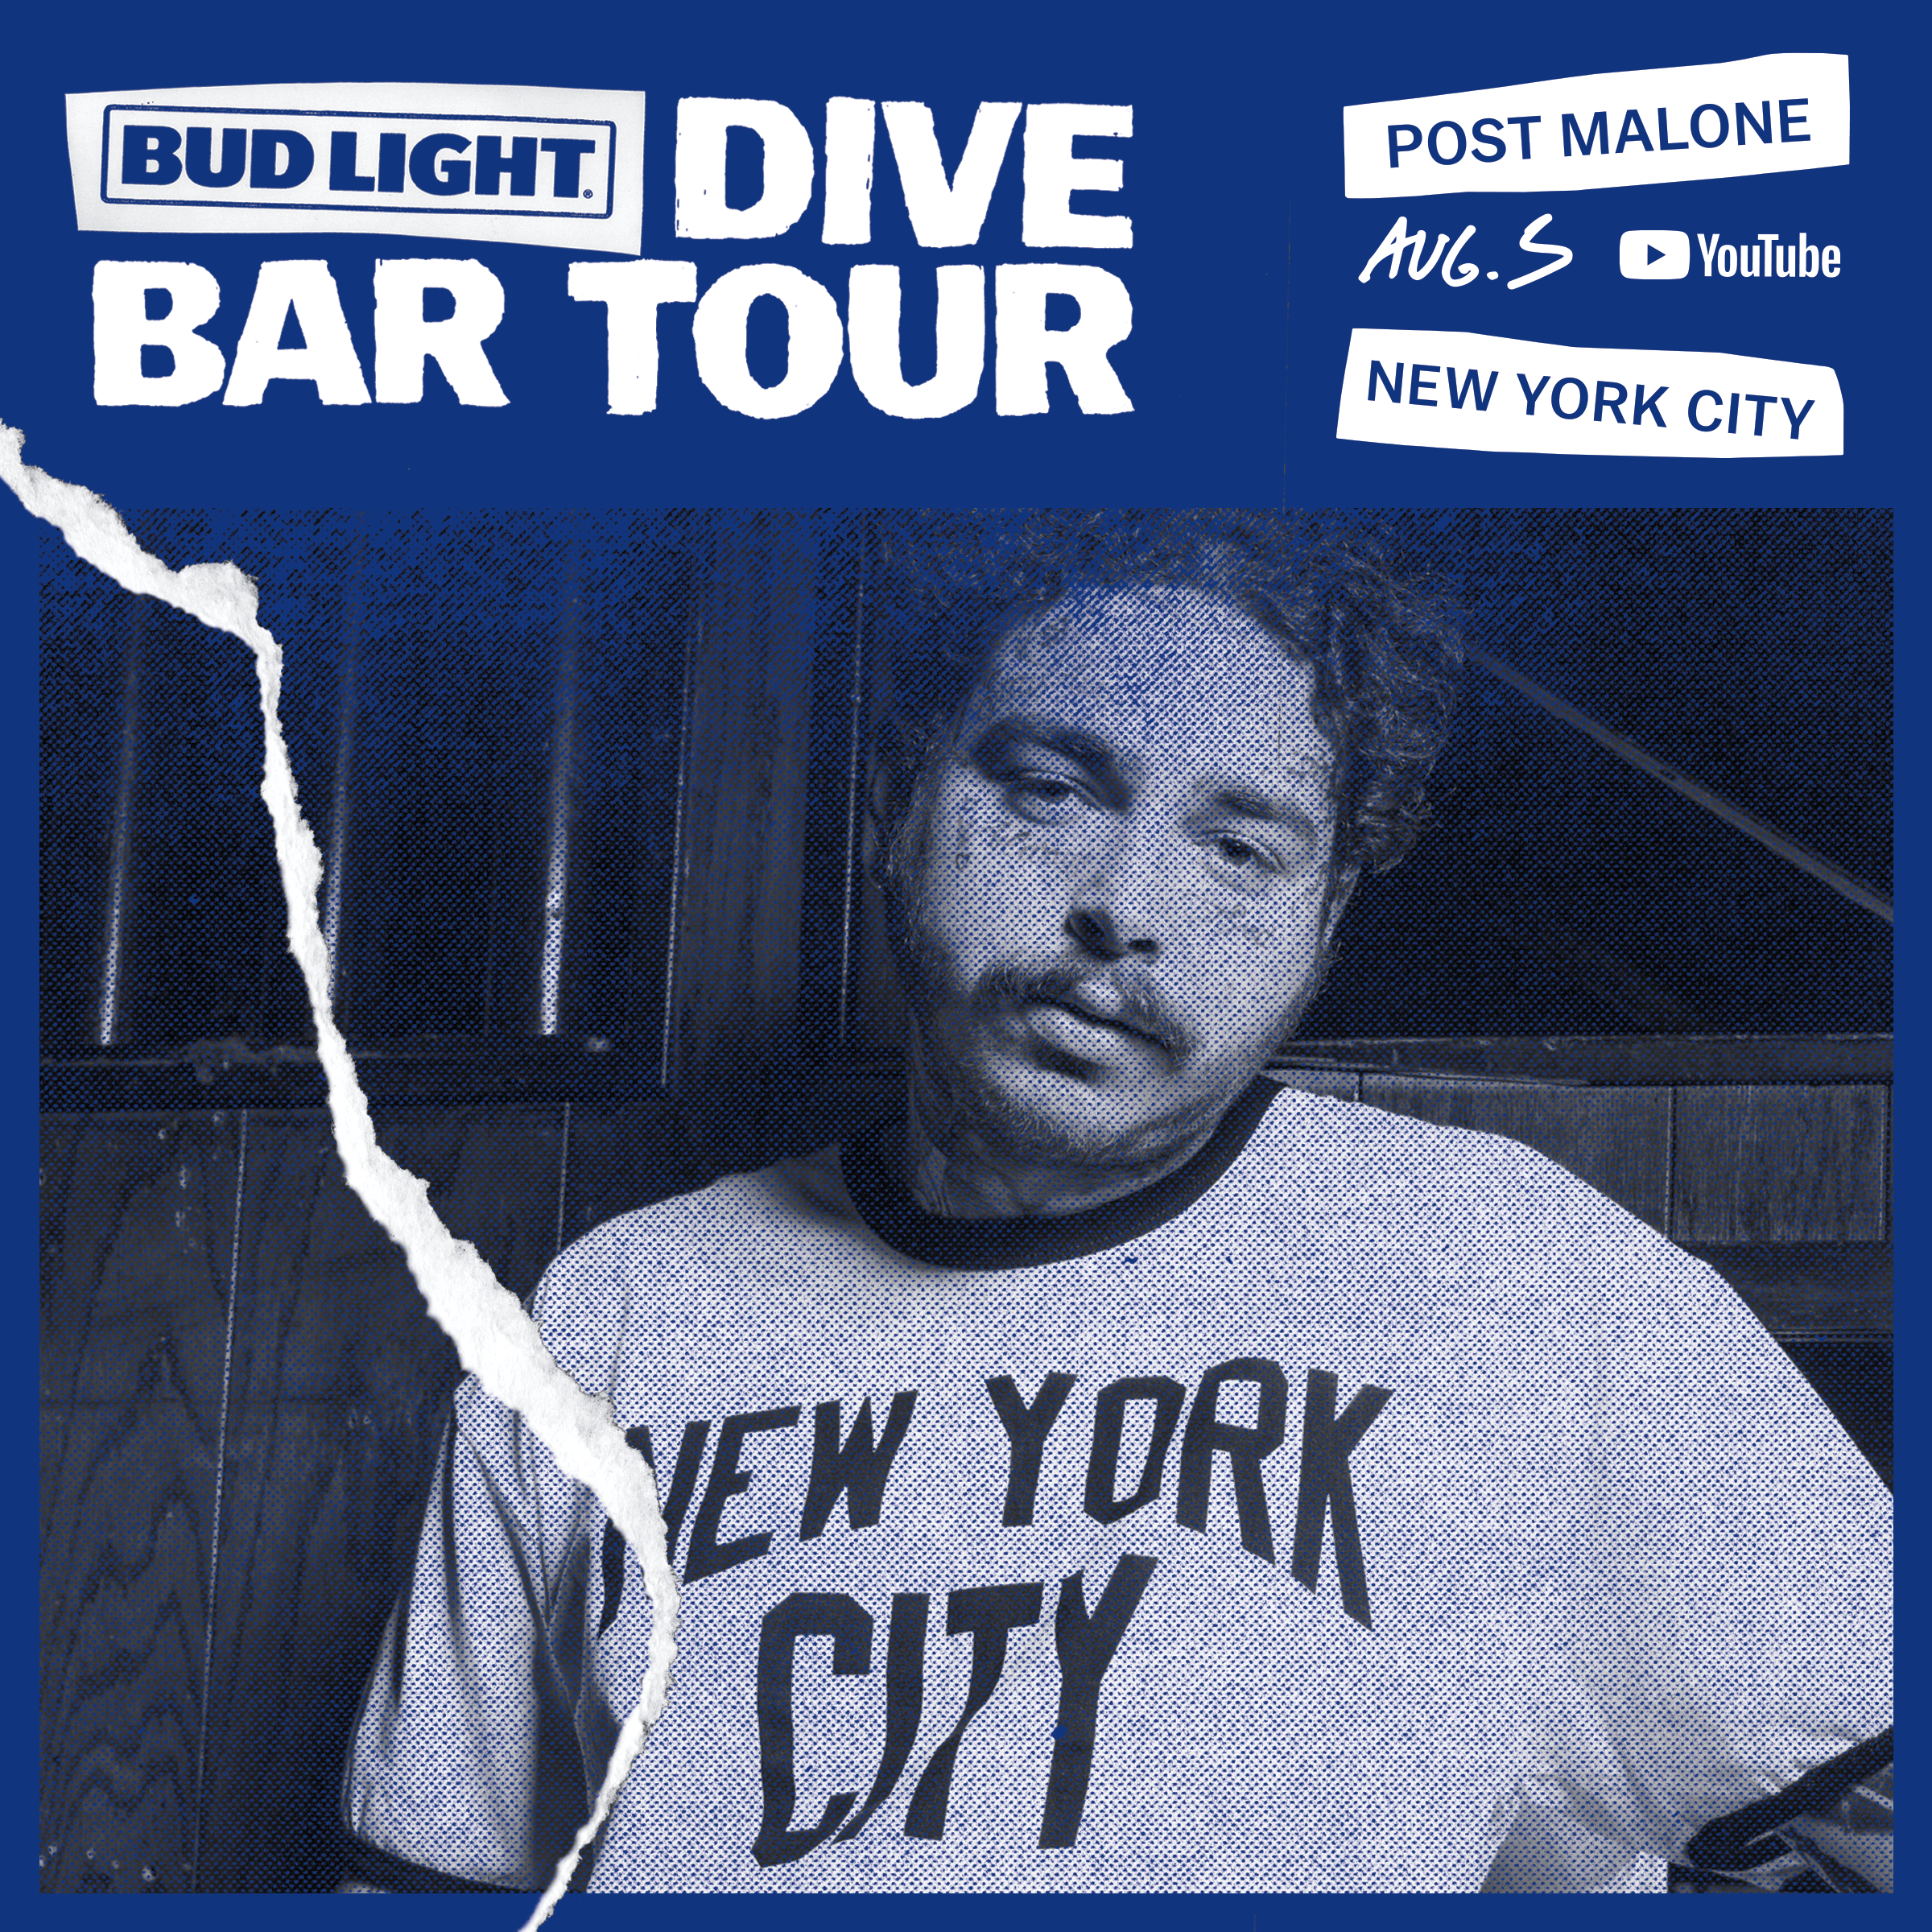 Post Malone Returns To The Bud Light Dive Bar Tour Stage